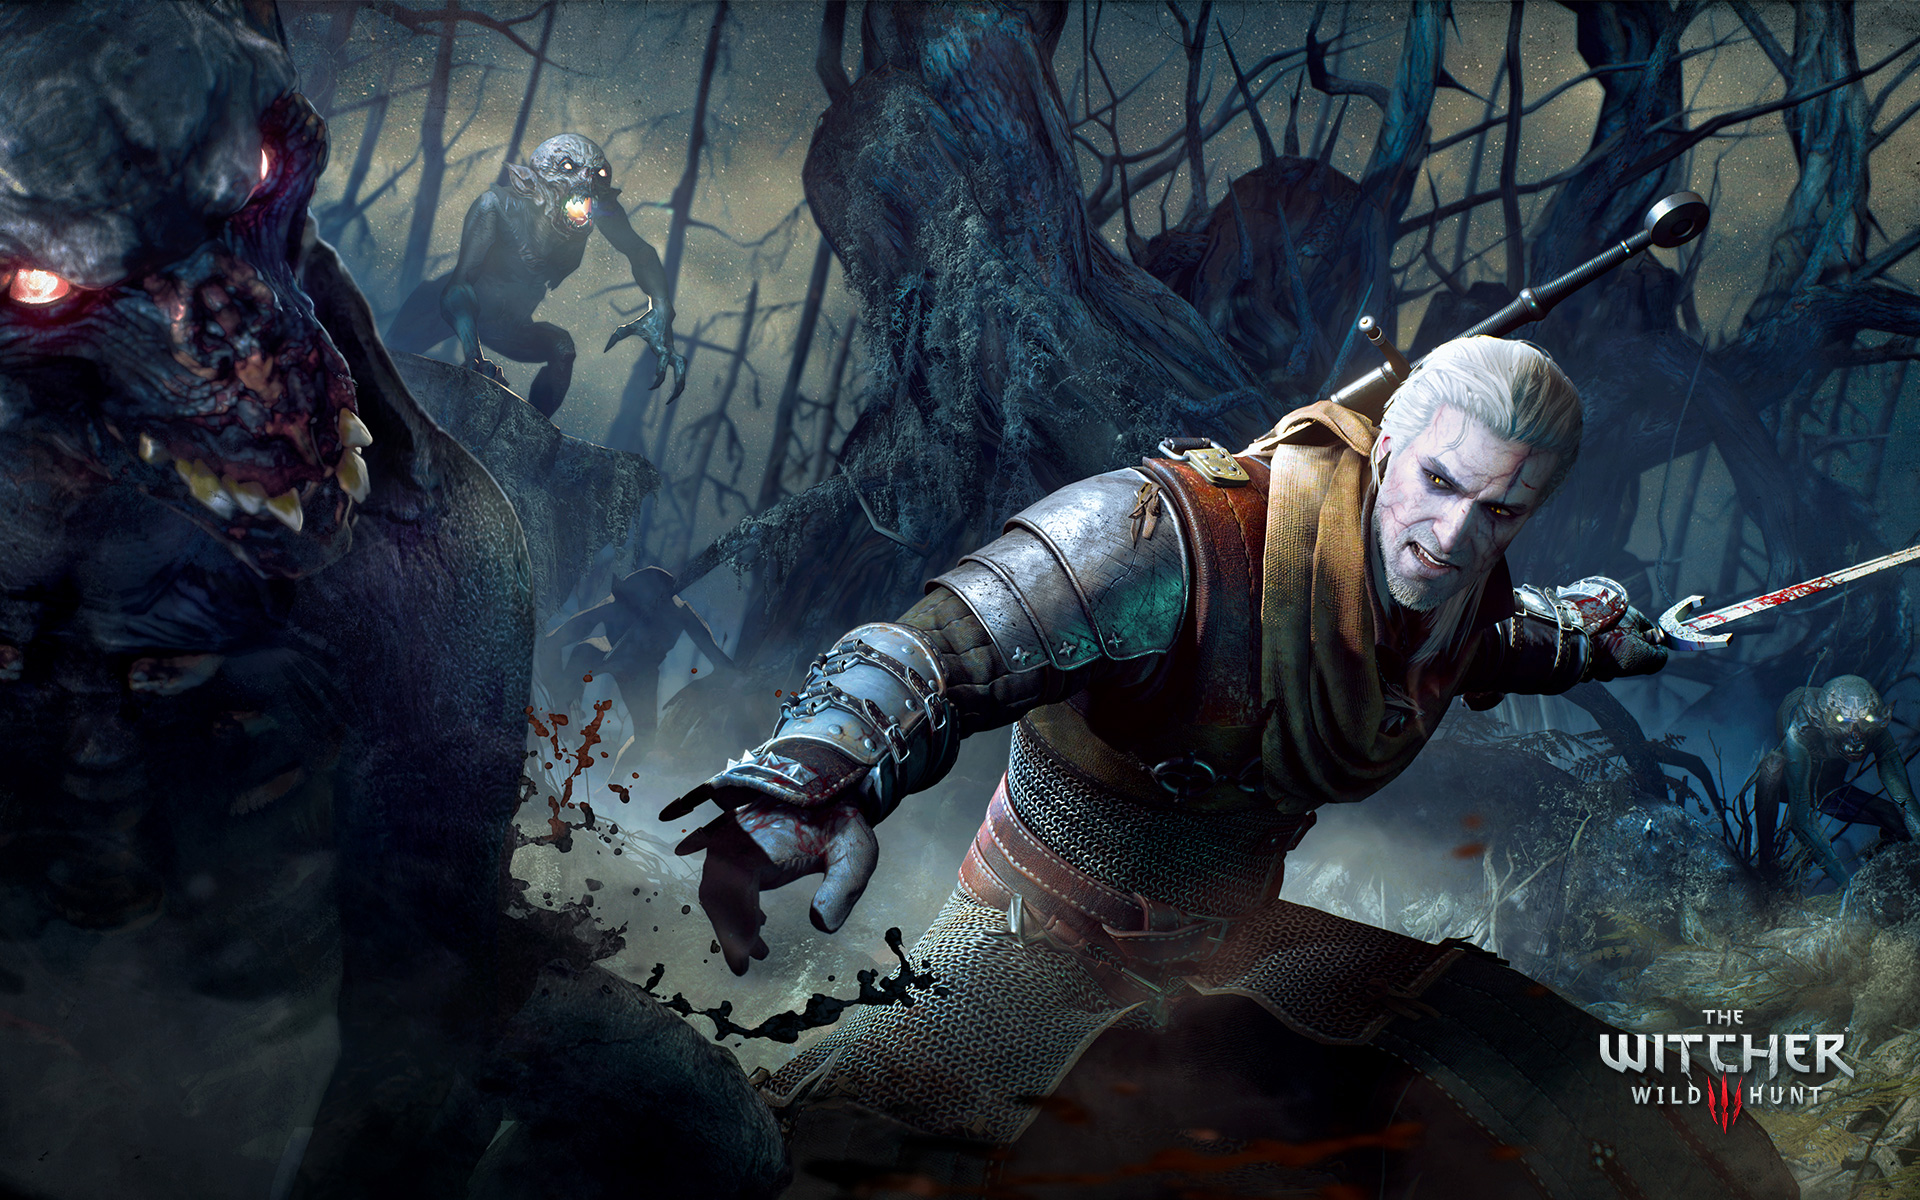 Why The Witcher's Original Writer Doesn't Make Money From The Games' Sales